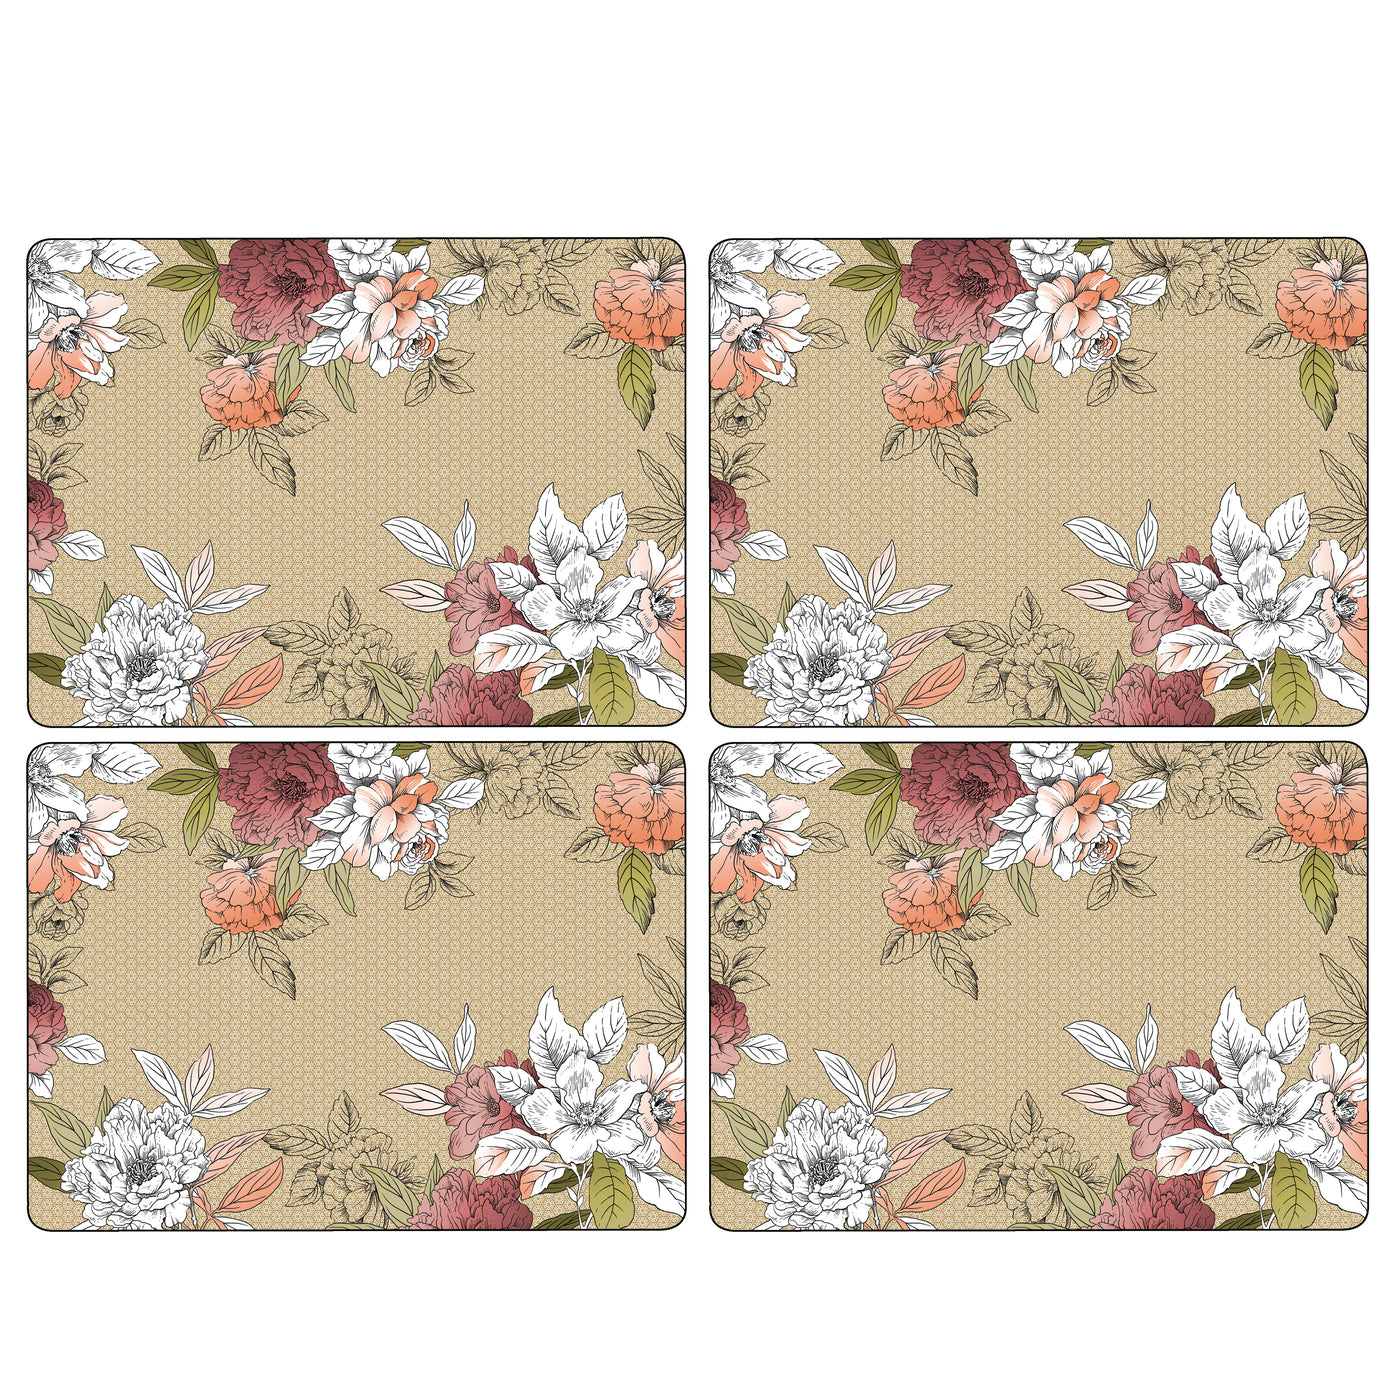 Floral Sketch Mats, Set of 4